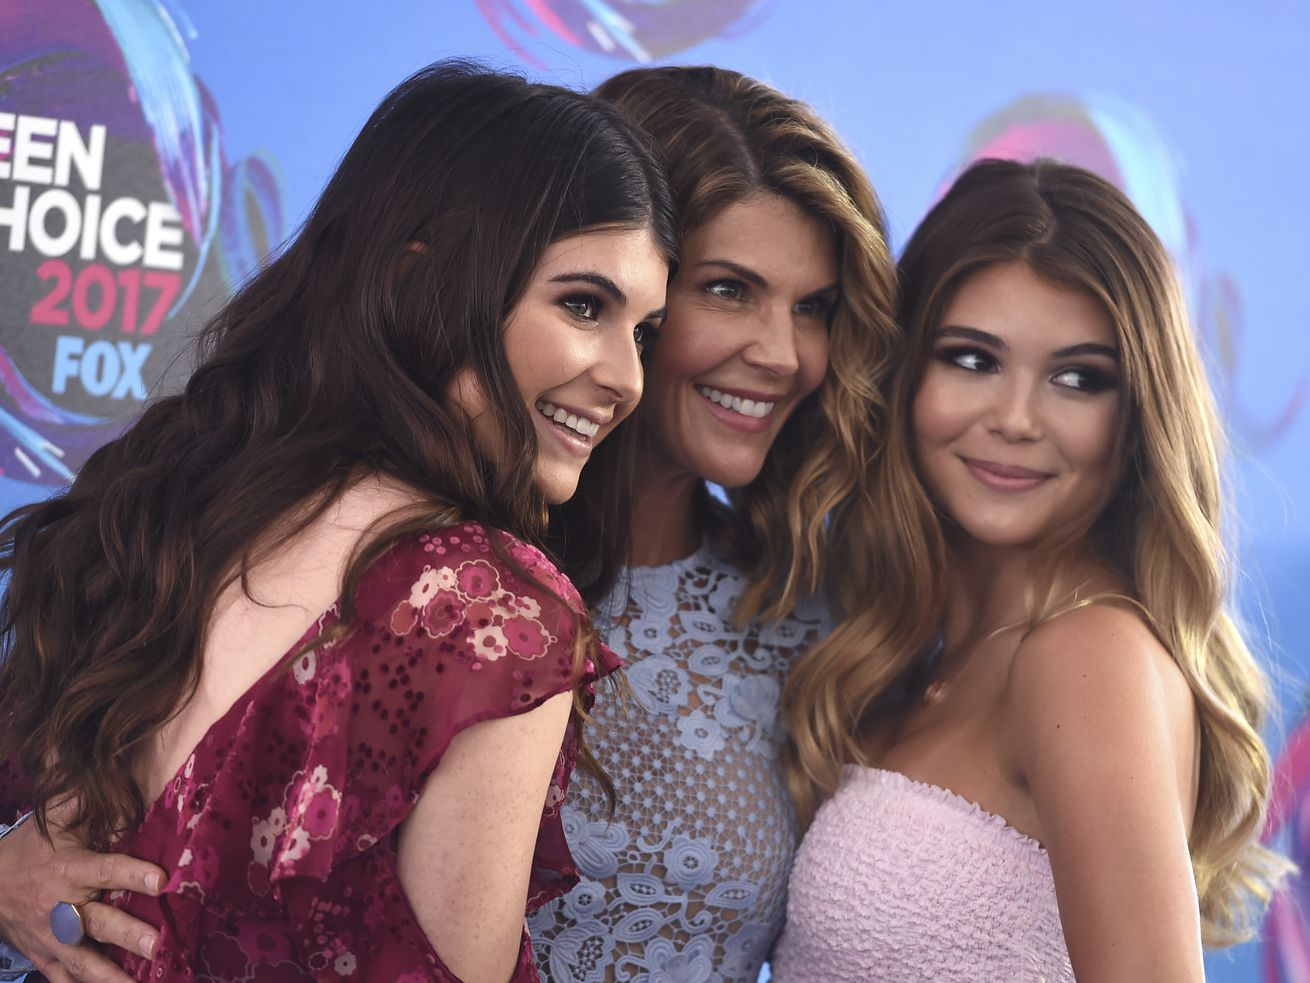 What the Hot Pockets heiress sentence tells us about Lori Loughlin